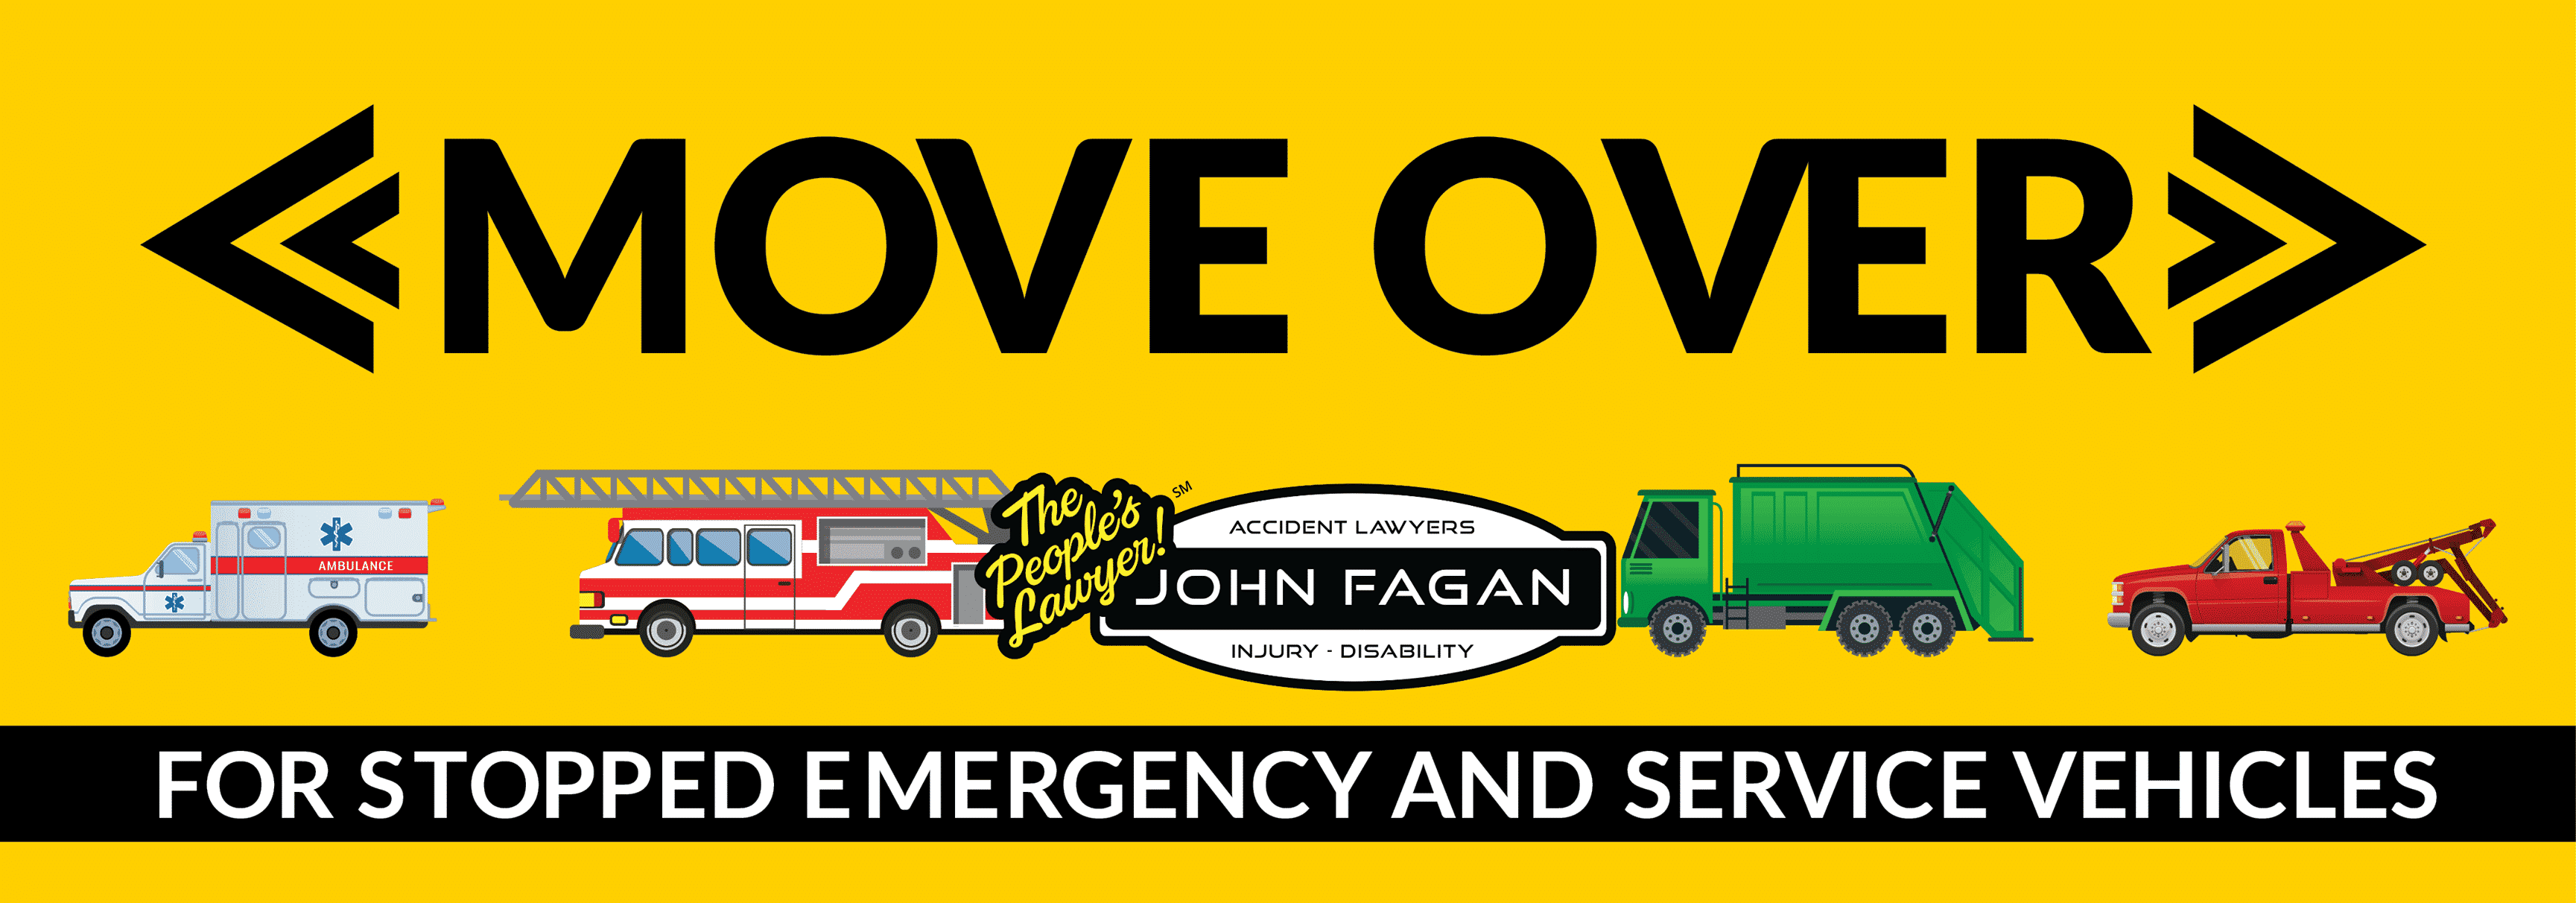 Florida law requires you to Move Over a lane — when you can safely do so — for stopped law enforcement, emergency, sanitation, utility service vehicles and tow trucks or wreckers